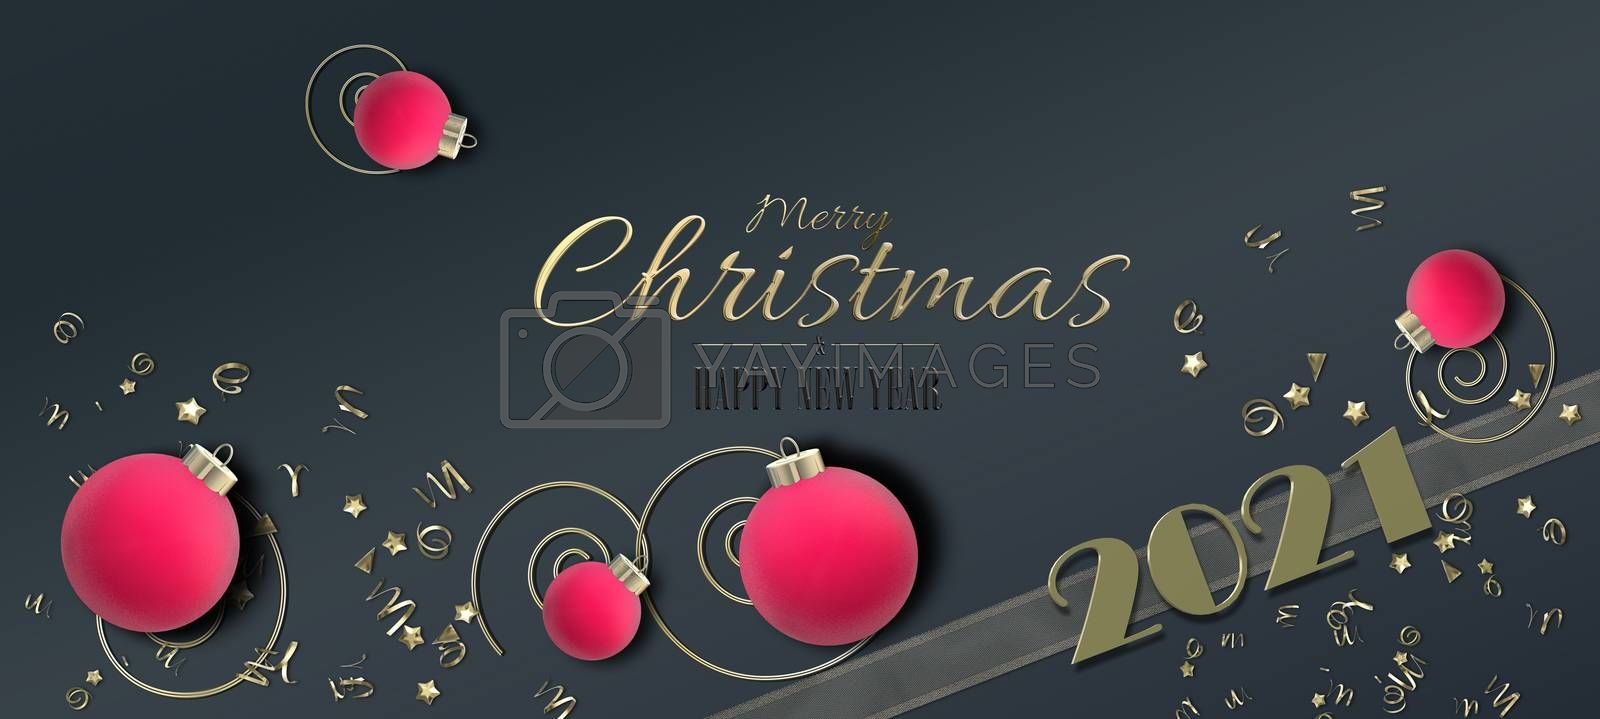 Christmas Holiday 2021 background. Xmas pink red realistic balls baubles, golden confetti, gold digit 2021, text Merry Christmas Happy New Year on black background. 3D illustration. Flat lay 3D design